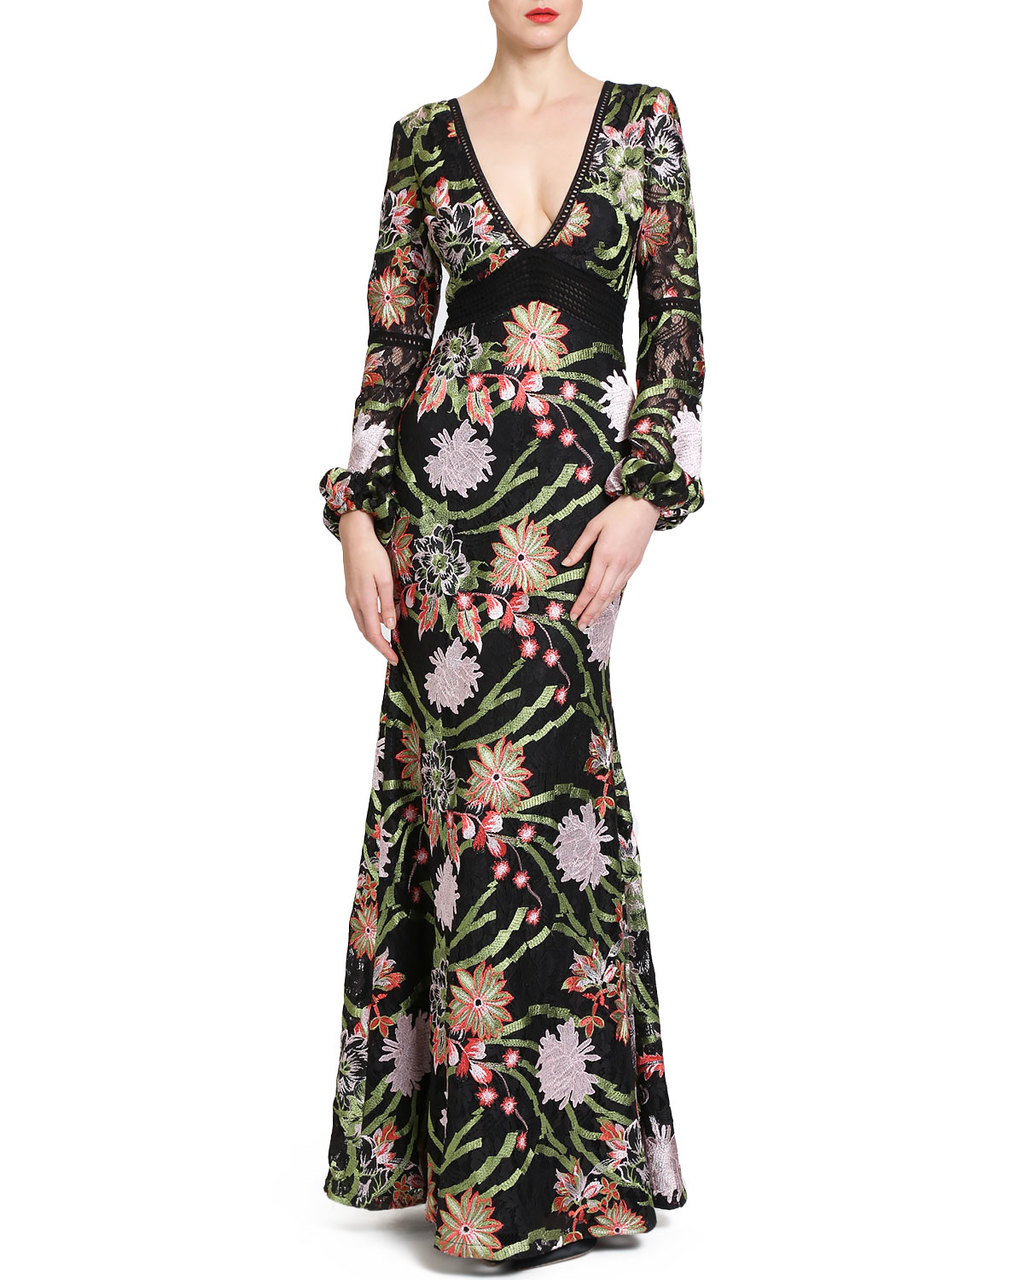 a64d6882ae Boho Floral Crochet Lace Evening Gown by Badgley Mischka